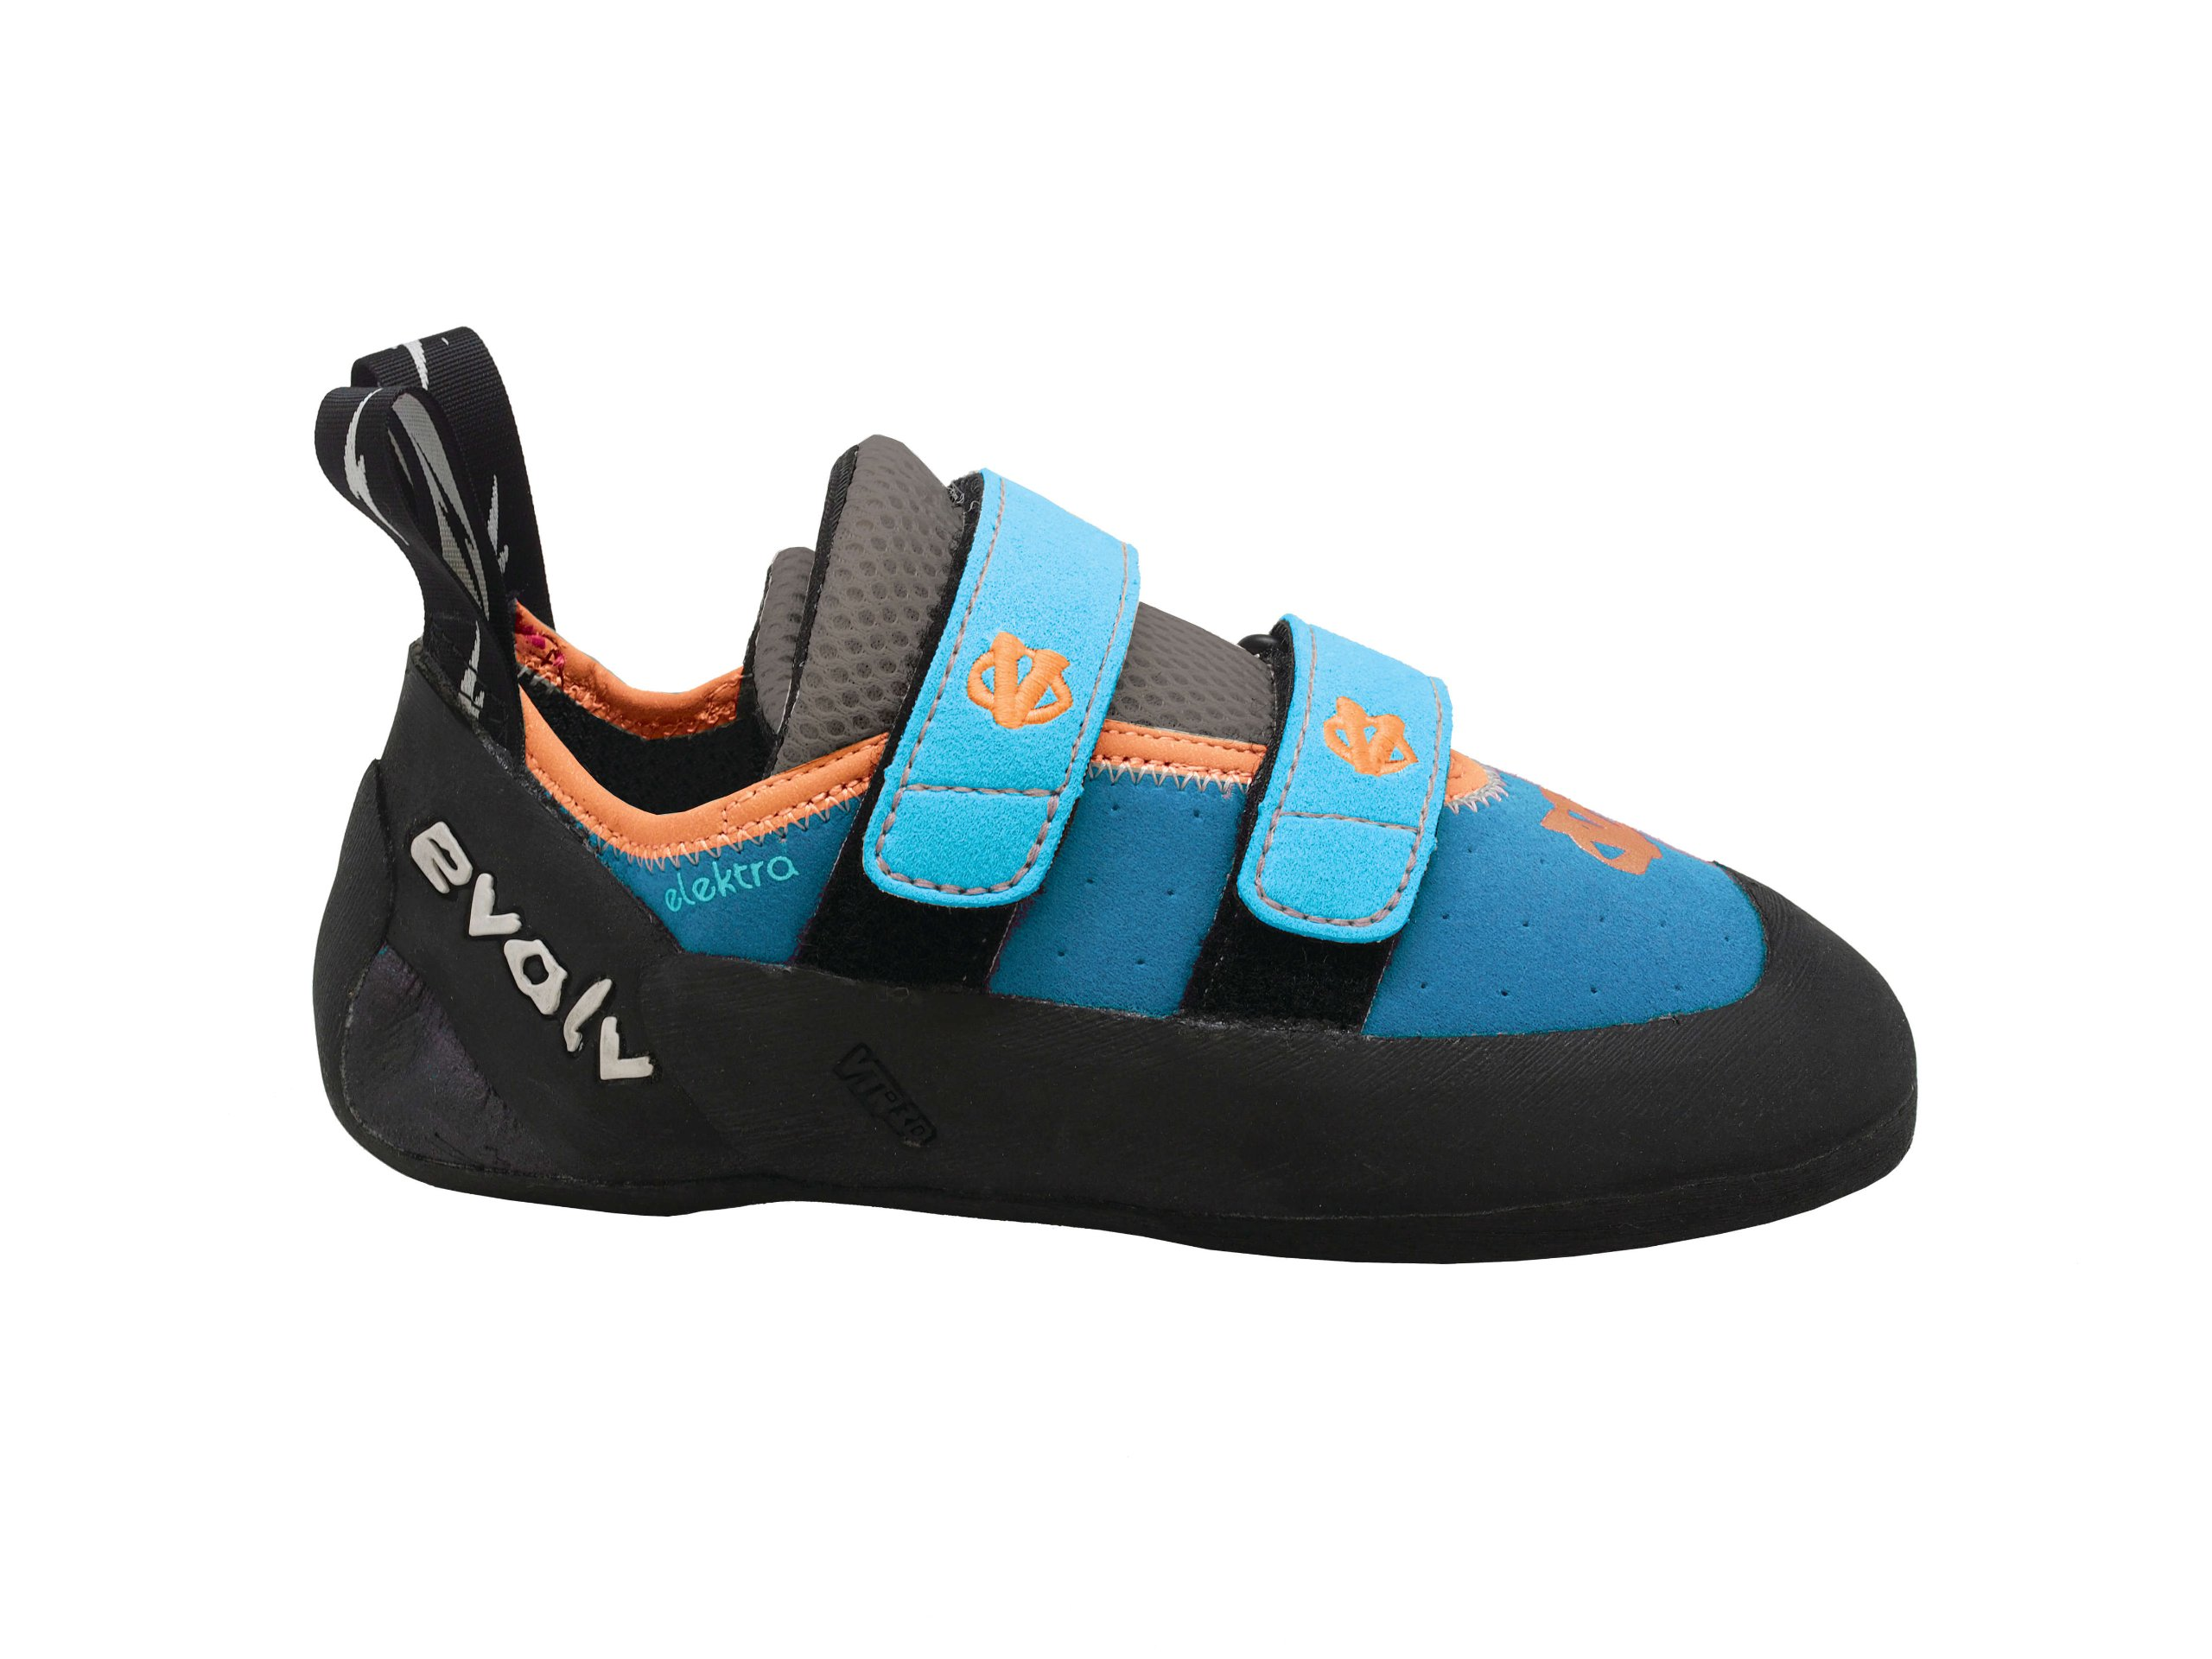 Evolv Elektra Climbing Shoe (2014) - Women's Teal 3.5 by Evolv